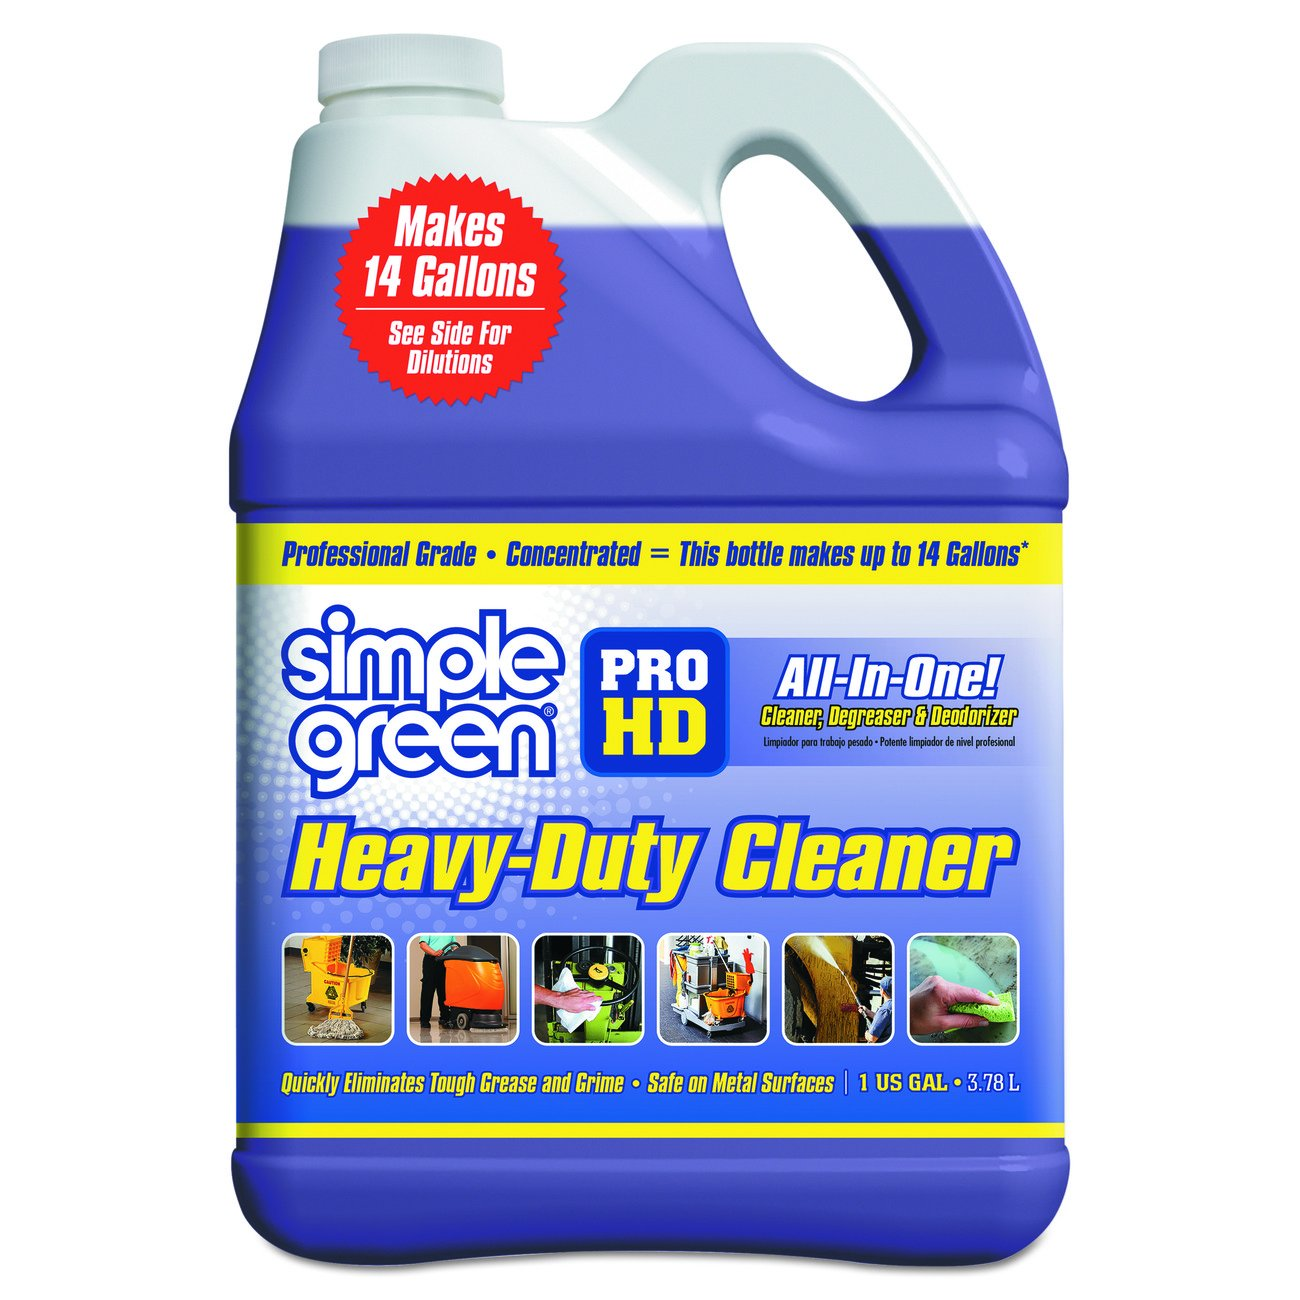 simple-green-smp13421ct-pro-hd-heavy-duty-cleaner-best-pressure-washer-detergent-soap-reviews